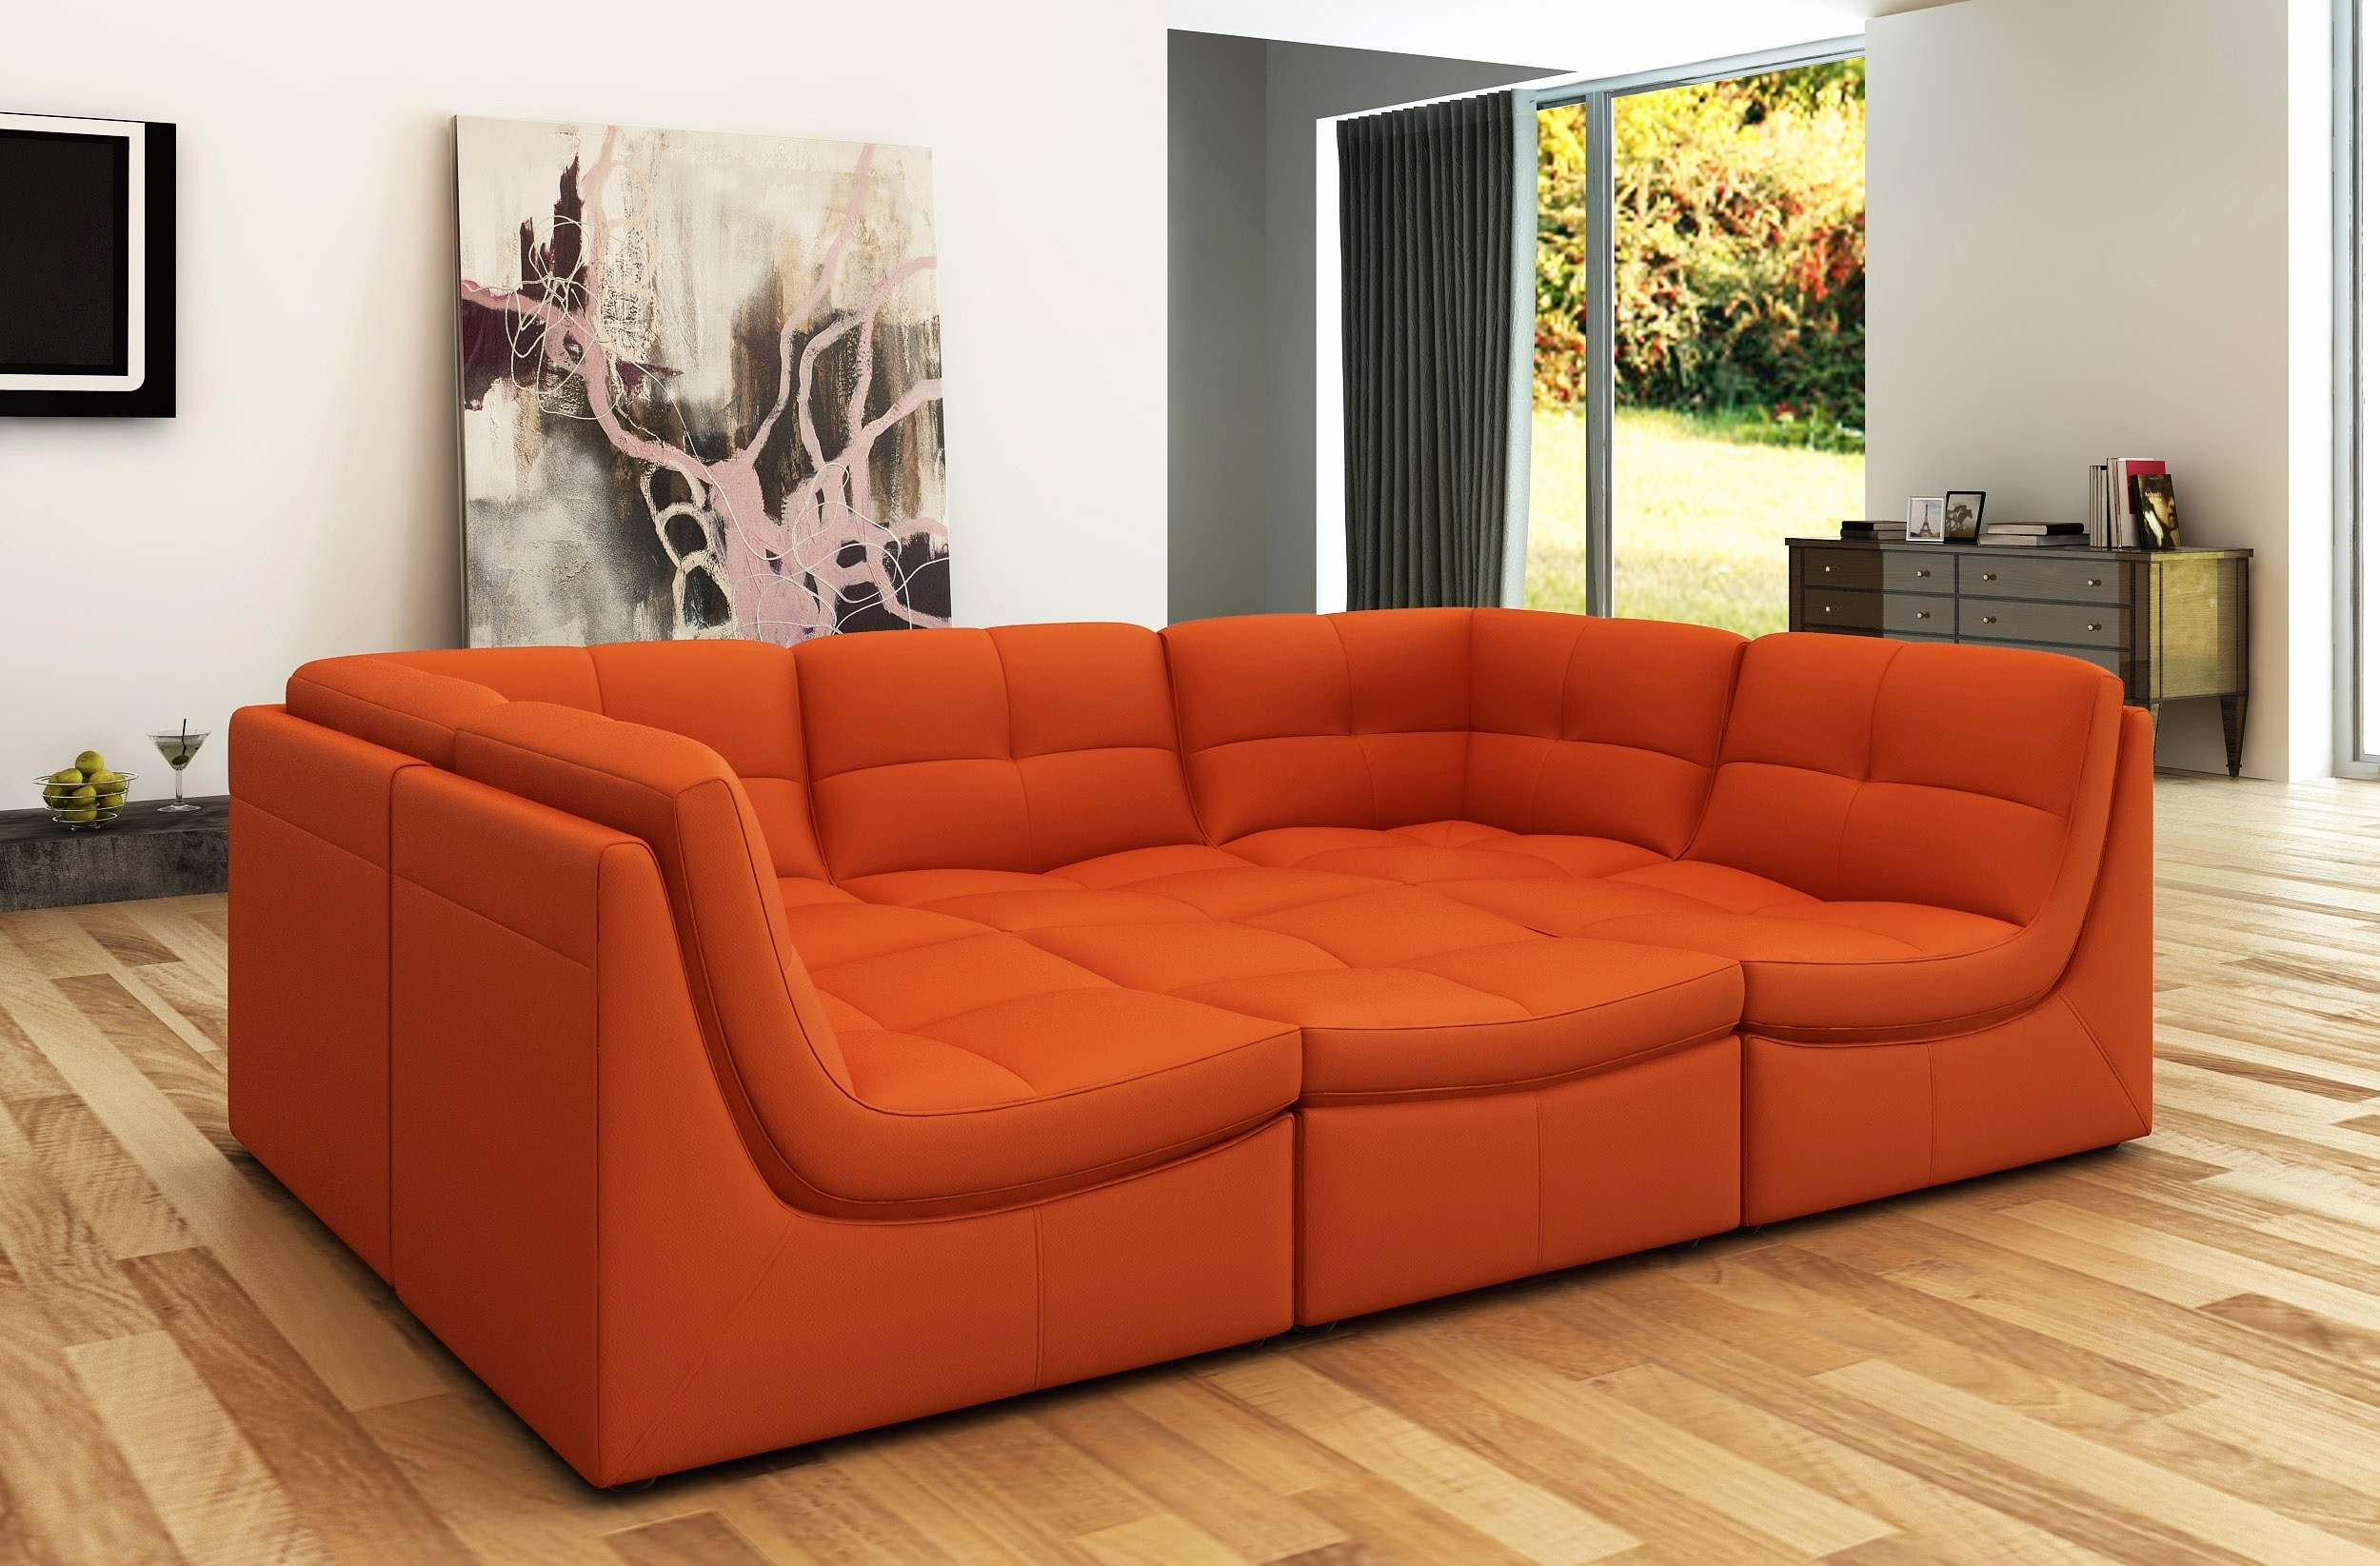 Best Leather Modular Couch 2018 – Couches And Sofas Ideas Pertaining To Des Moines Ia Sectional Sofas (View 7 of 10)